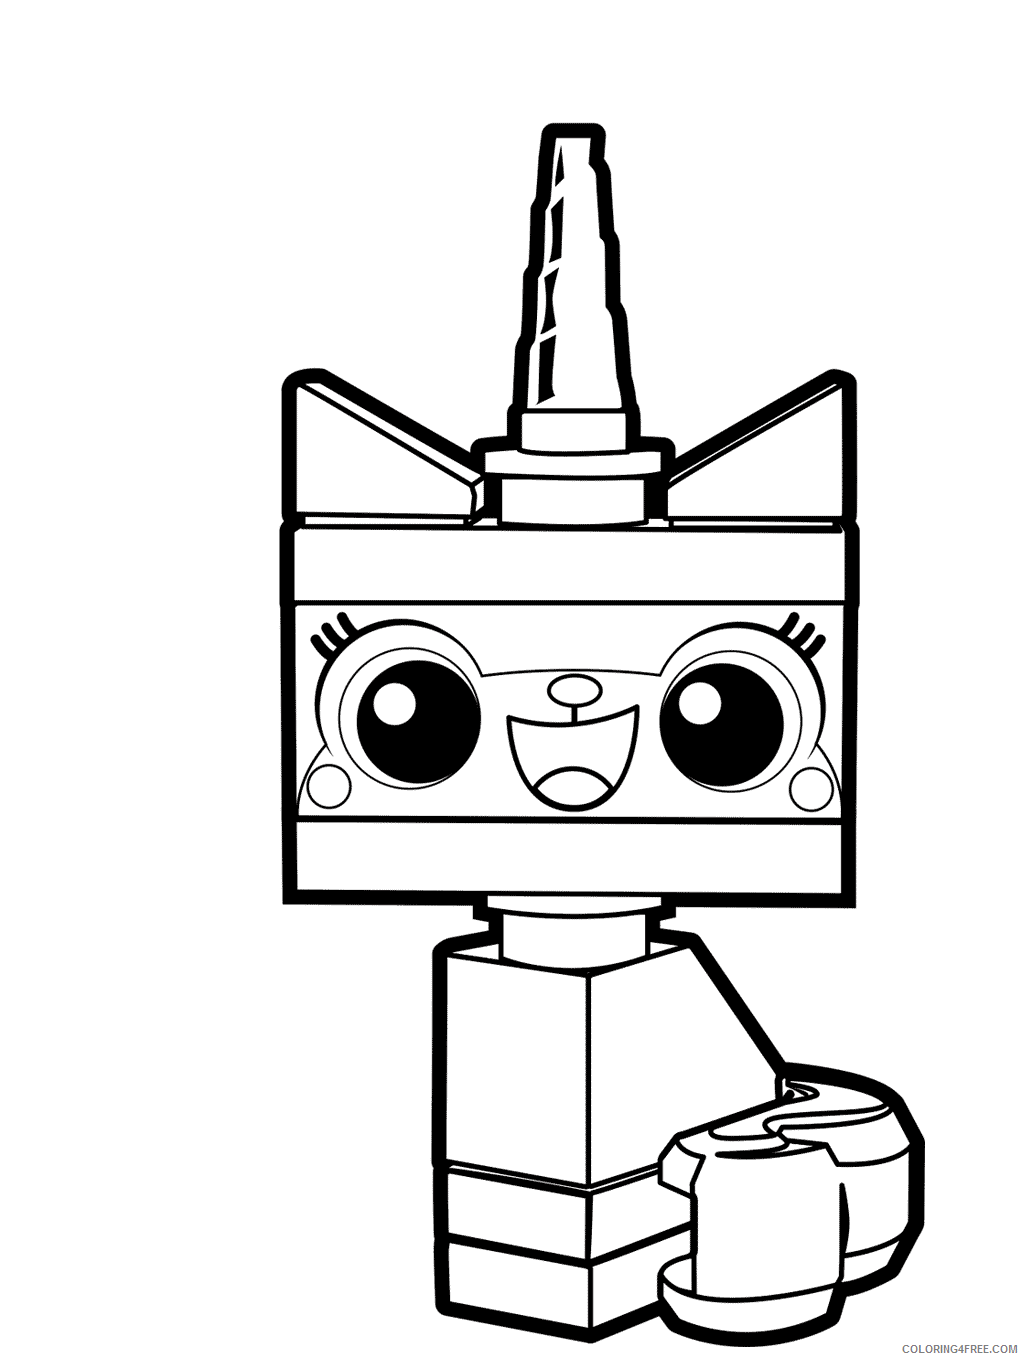 LEGO Unikitty Coloring Pages Cartoons Unikitty Lego Movie Printable 2020 3785 Coloring4free